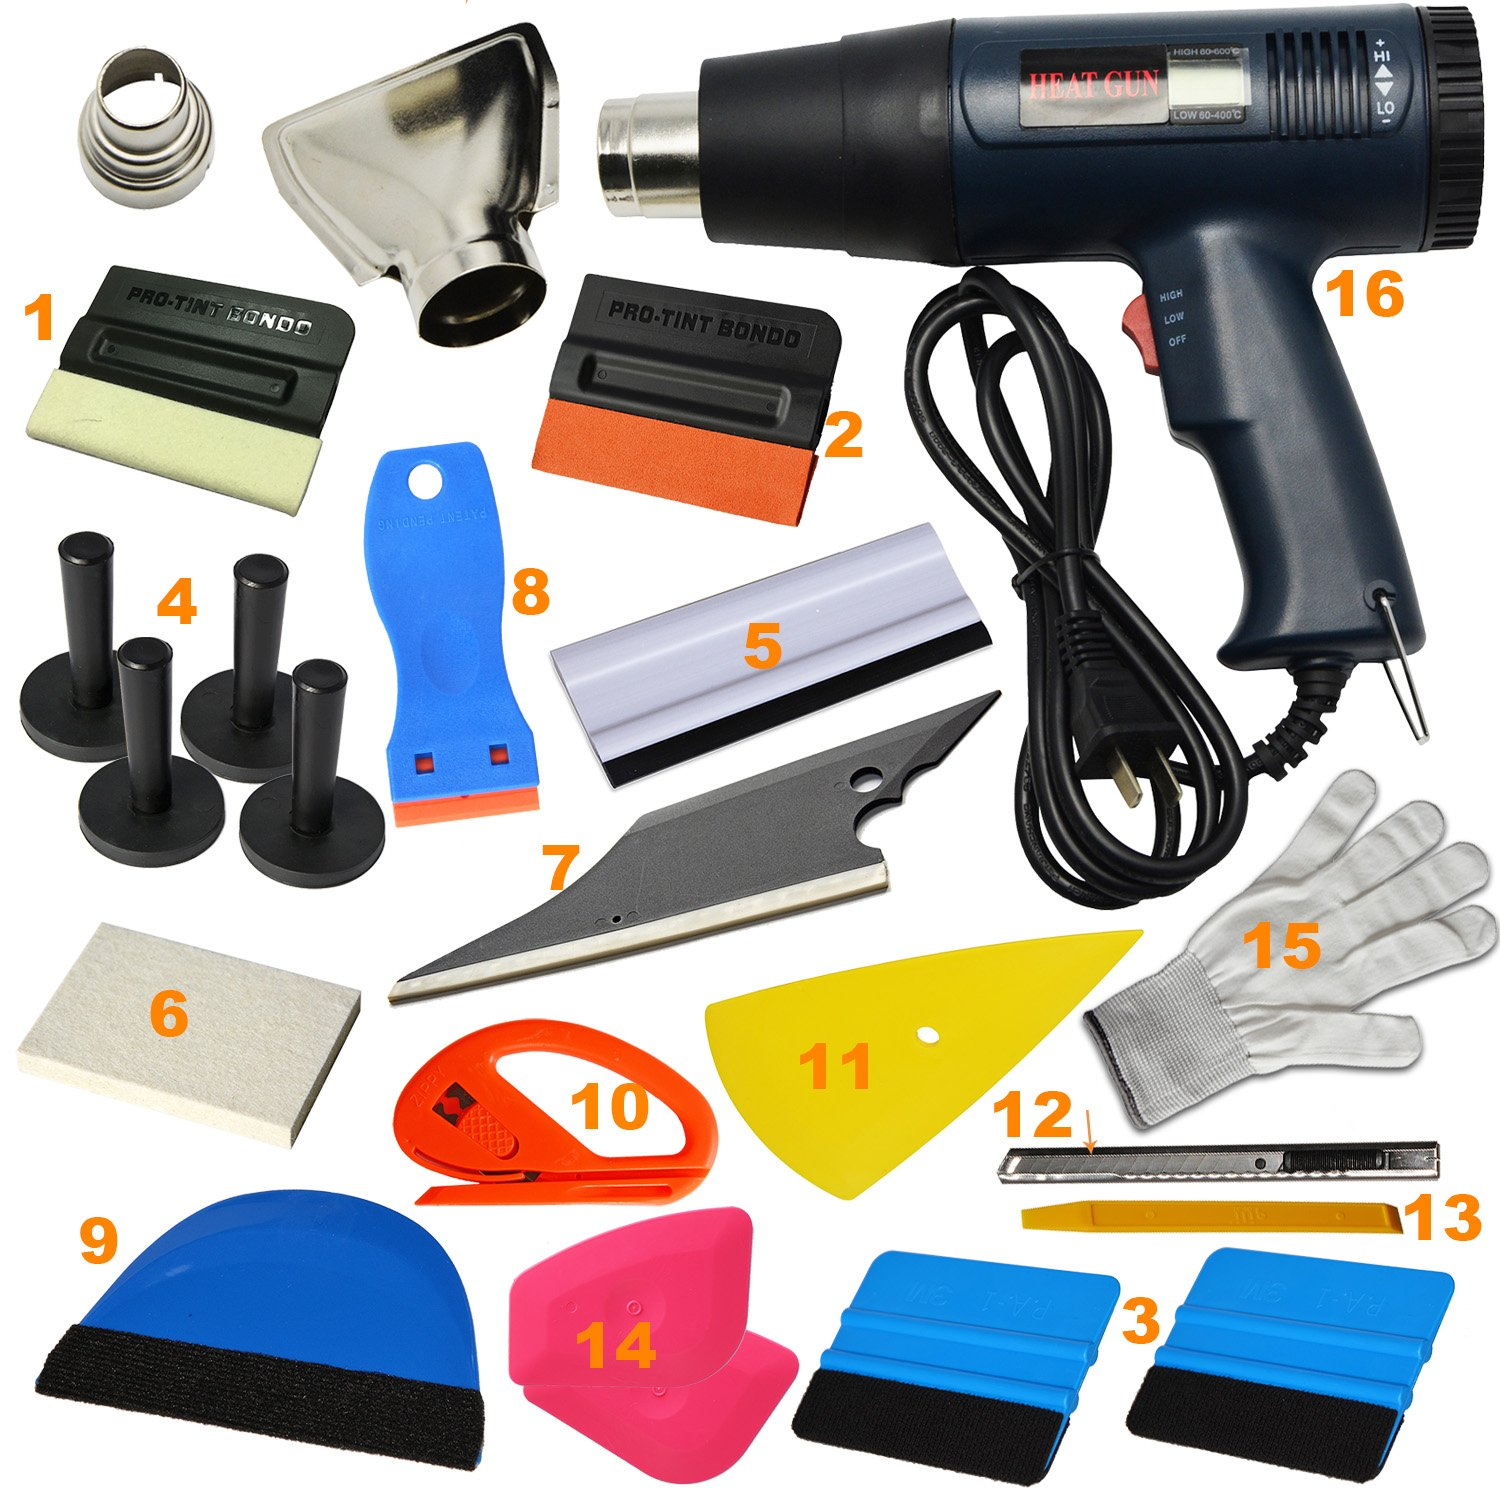 Ehdis 16 Kinds of Car Vinyl Wrap Tool Window Tint Kit for Auto Film Tinting Set Application Installation or Removal with LCD Display Heat Gun by Ehdis (Image #2)